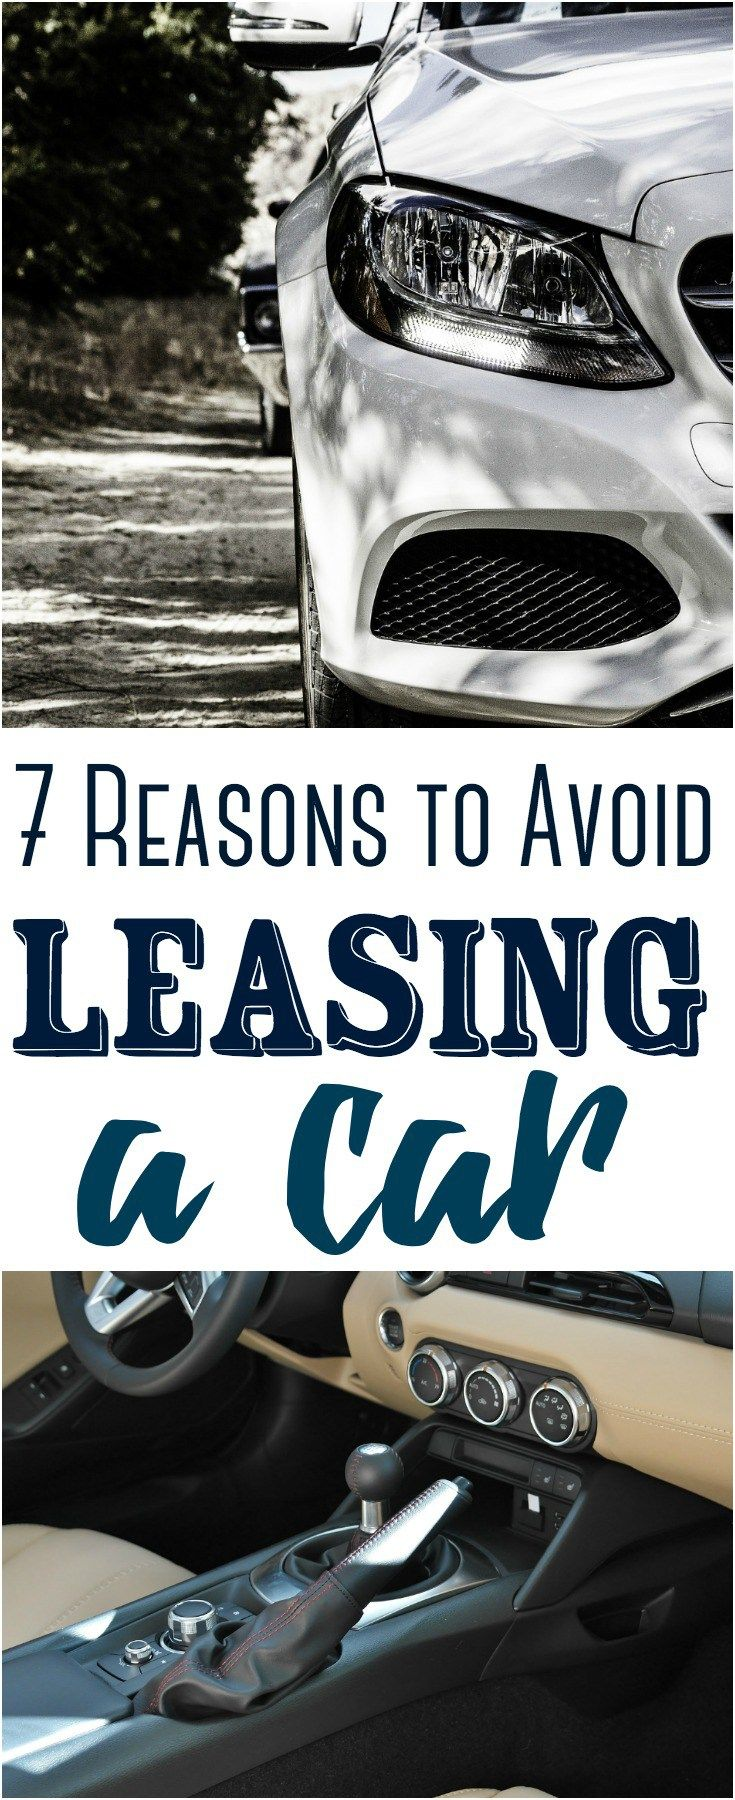 Leasing A Car Might Seem Like A Wonderful Way To Get Into A New